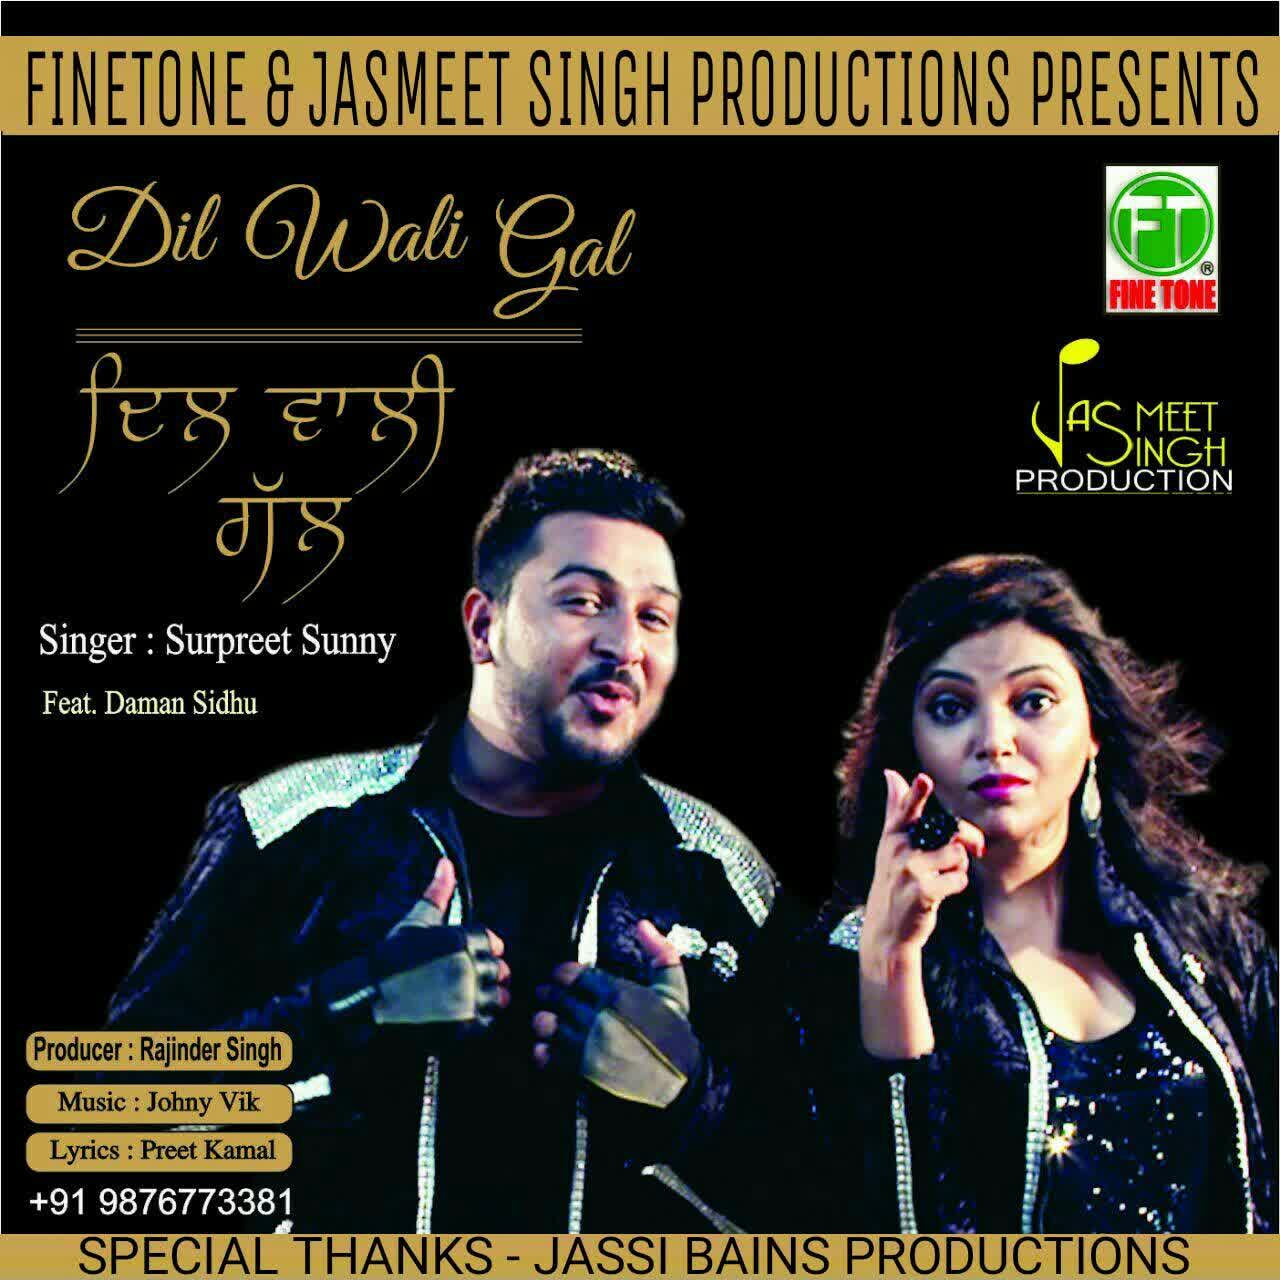 Dil Wali Gall Surpreet Sunny Mp3 Song